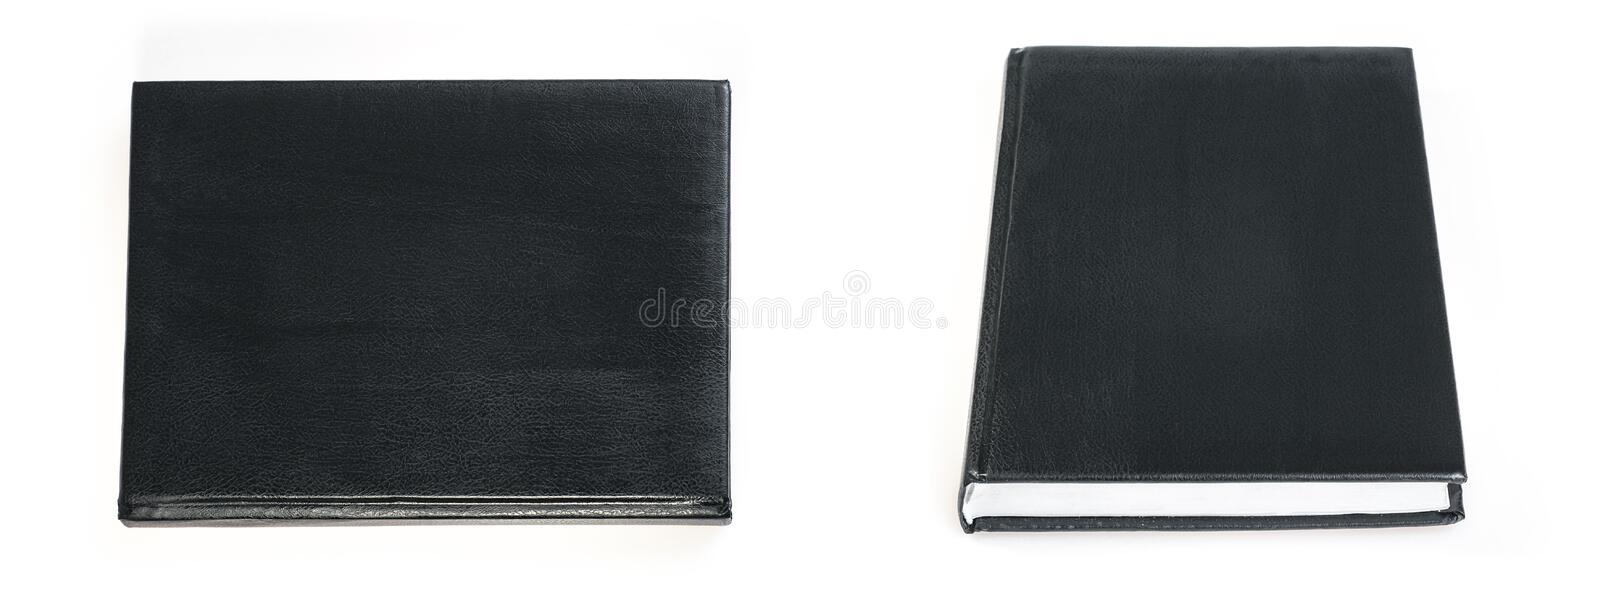 Black book cover isolated on white background royalty free stock photos